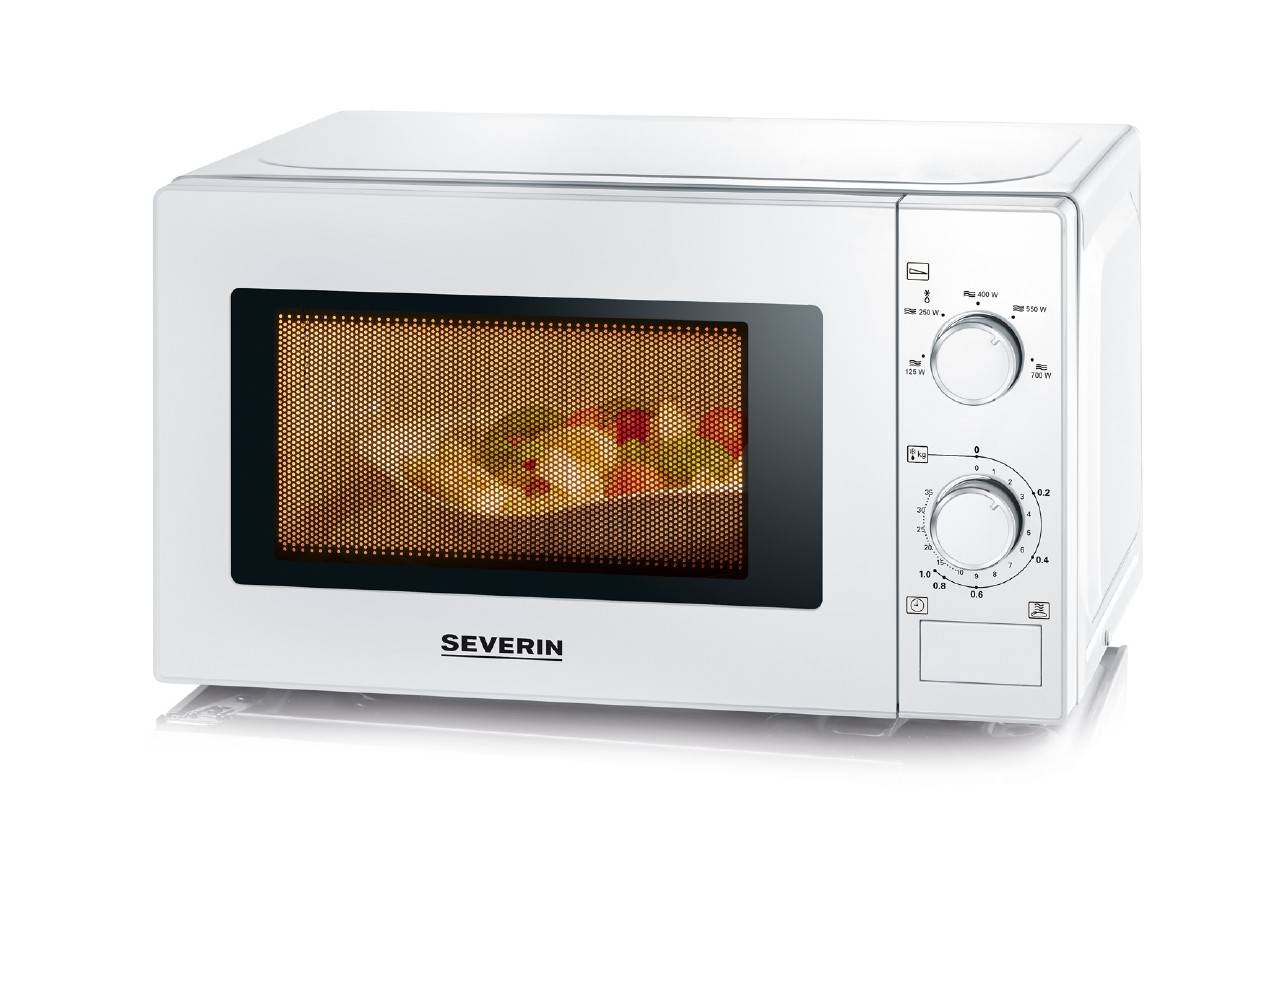 Severin FOUR A MICRO-ONDES GRIL, BLANC, 700 W, 20  Severin